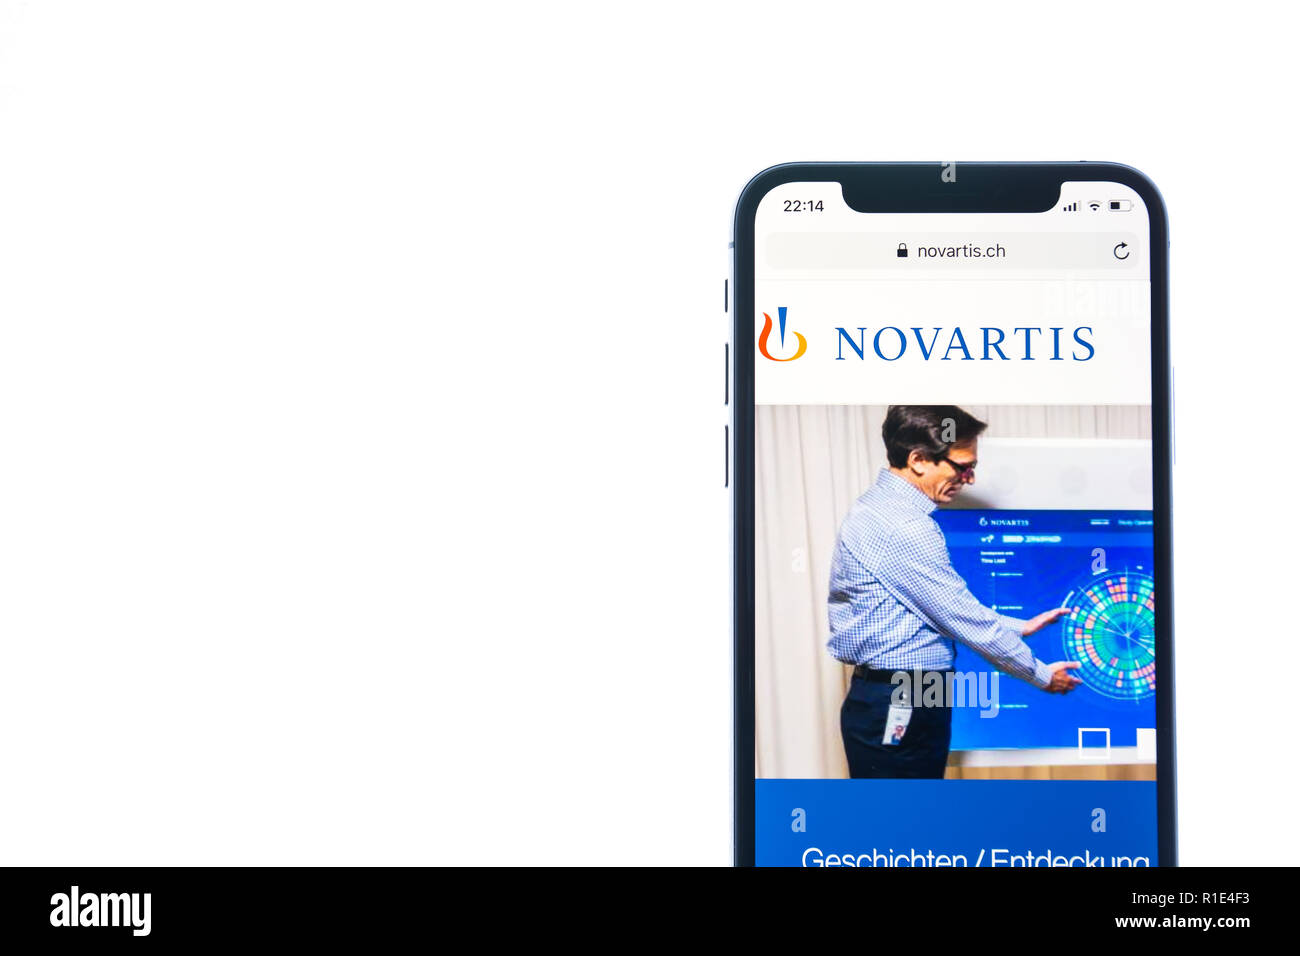 SOLOTHURN, SWITZERLAND - NOVEMBER 11, 2018: Novartis logo displayed on a modern smartphone - Stock Image